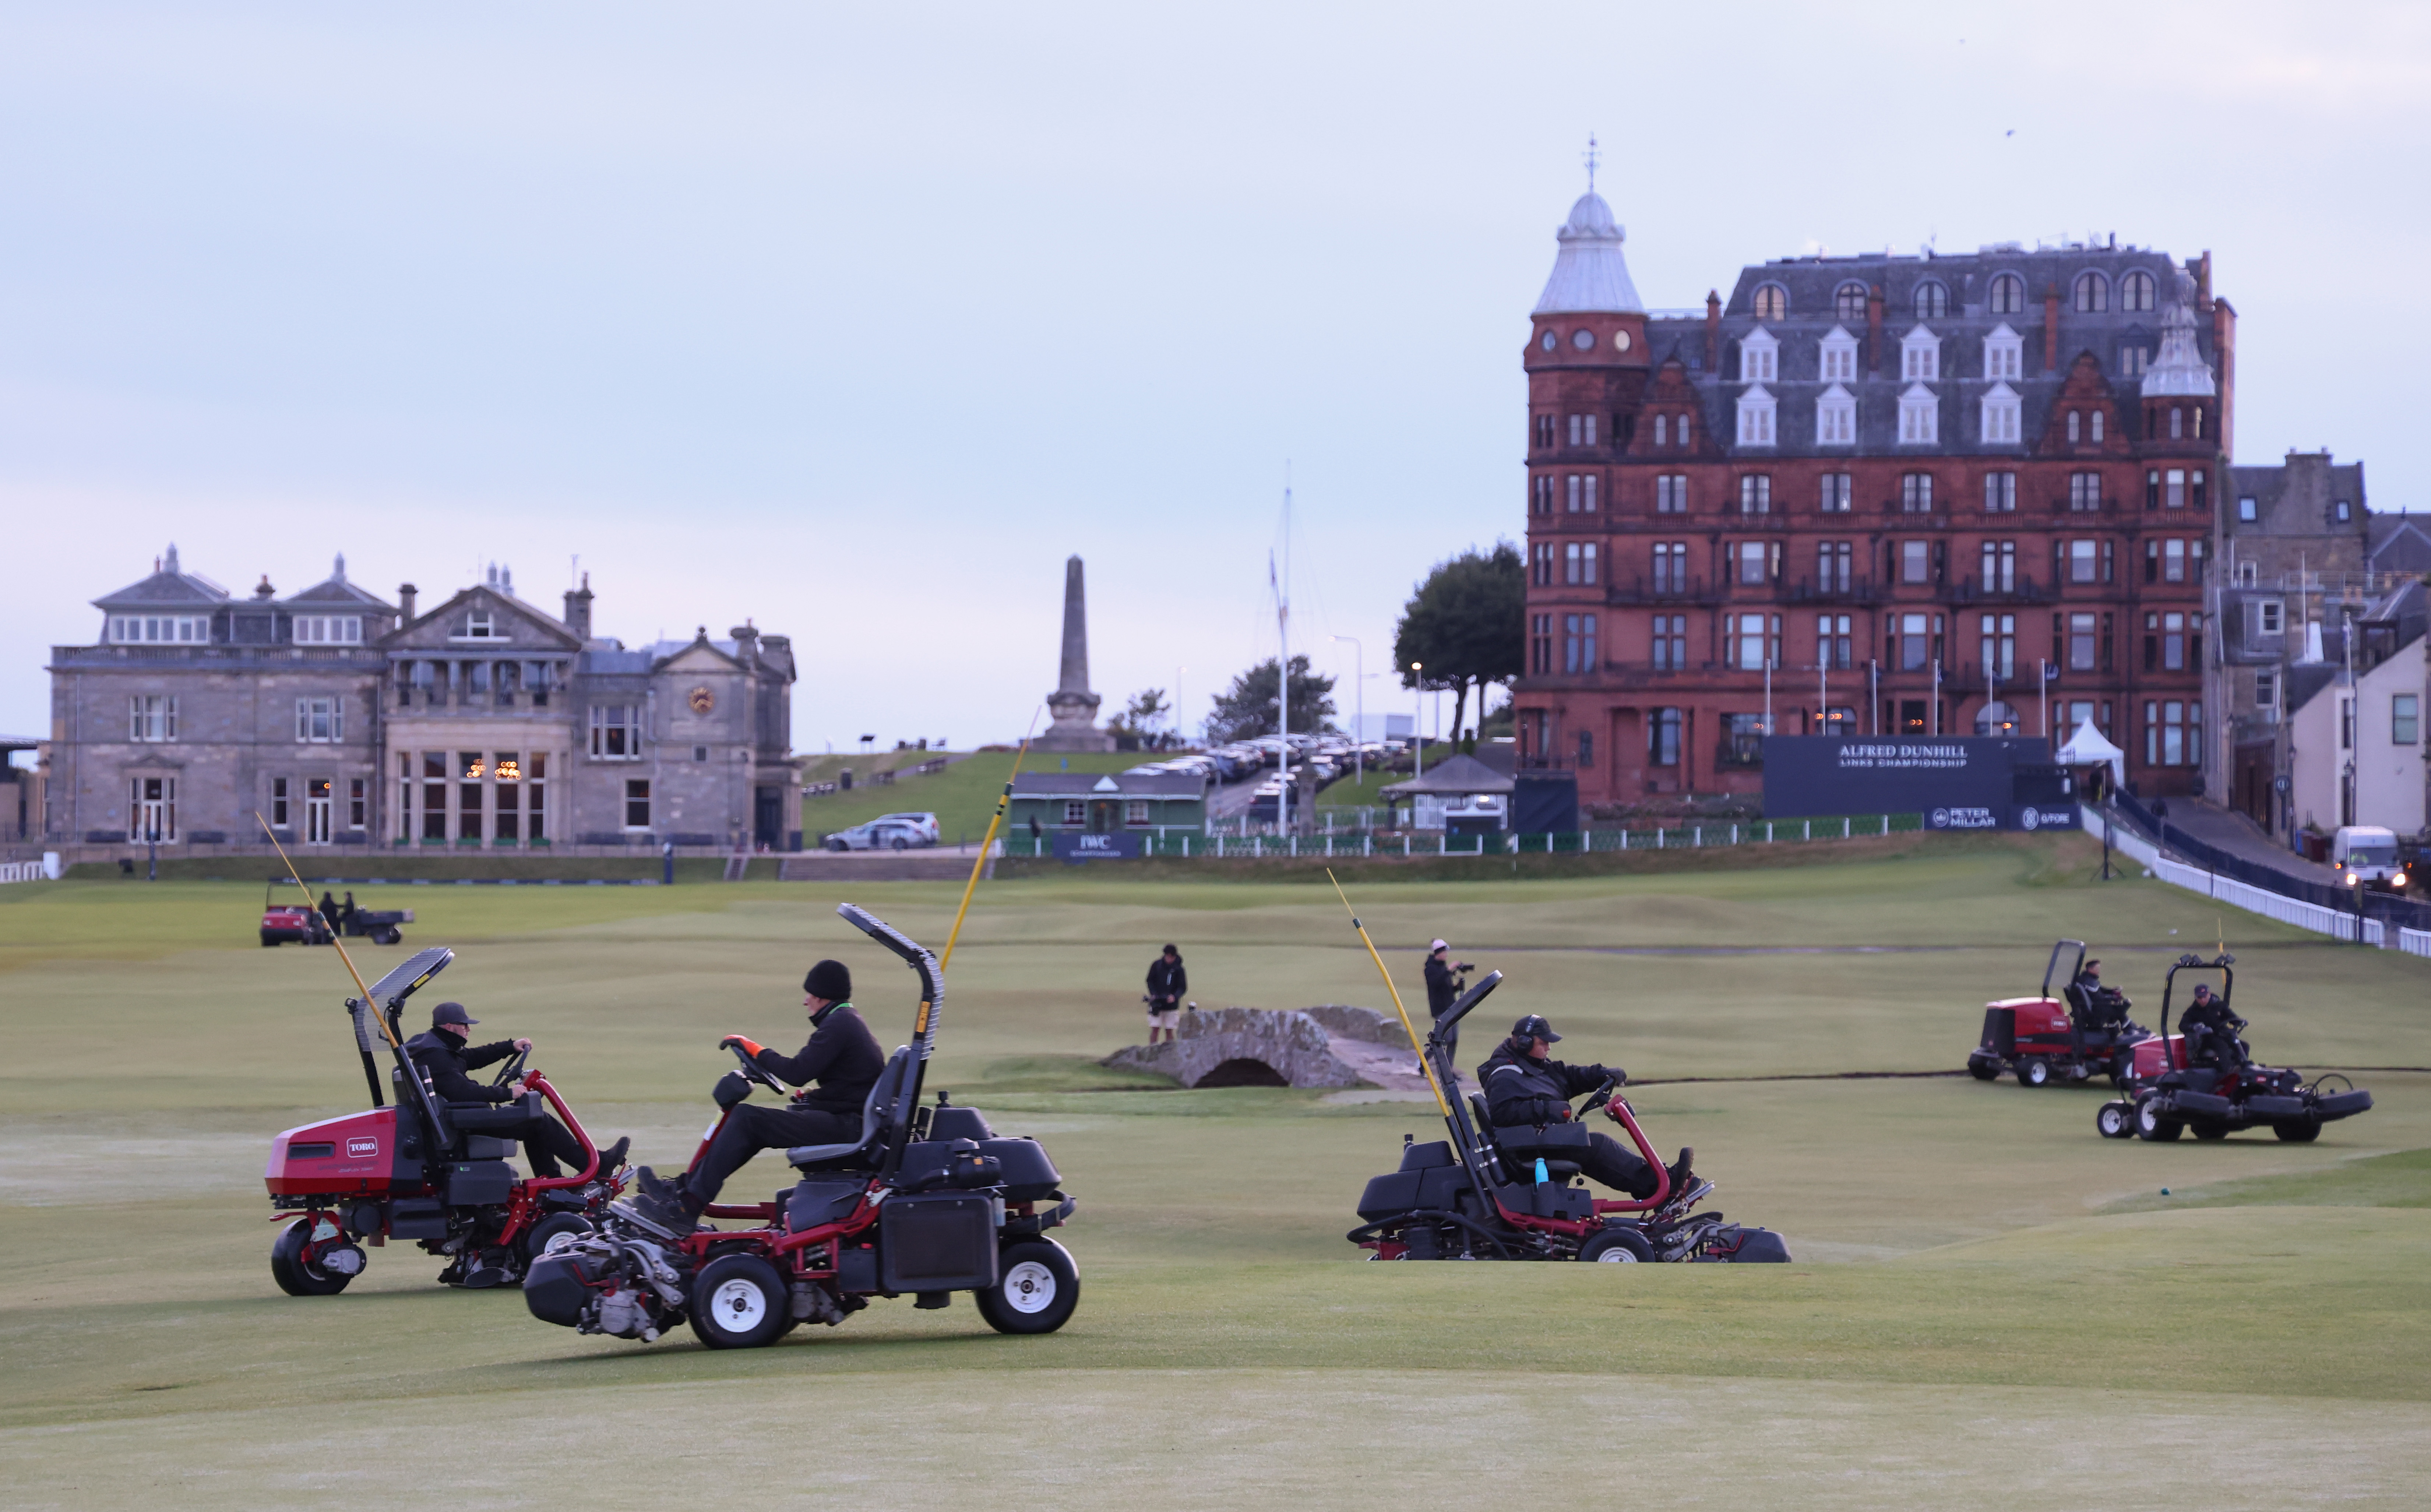 <p>ST ANDREWS, SCOTLAND - SEPTEMBER 29: Greenkeepers prepare the course before a practice round ahead of The Alfred Dunhill Links Championship at The Old Course on September 29, 2021 in St Andrews, Scotland. (Photo by Richard Heathcote/Getty Images)</p>